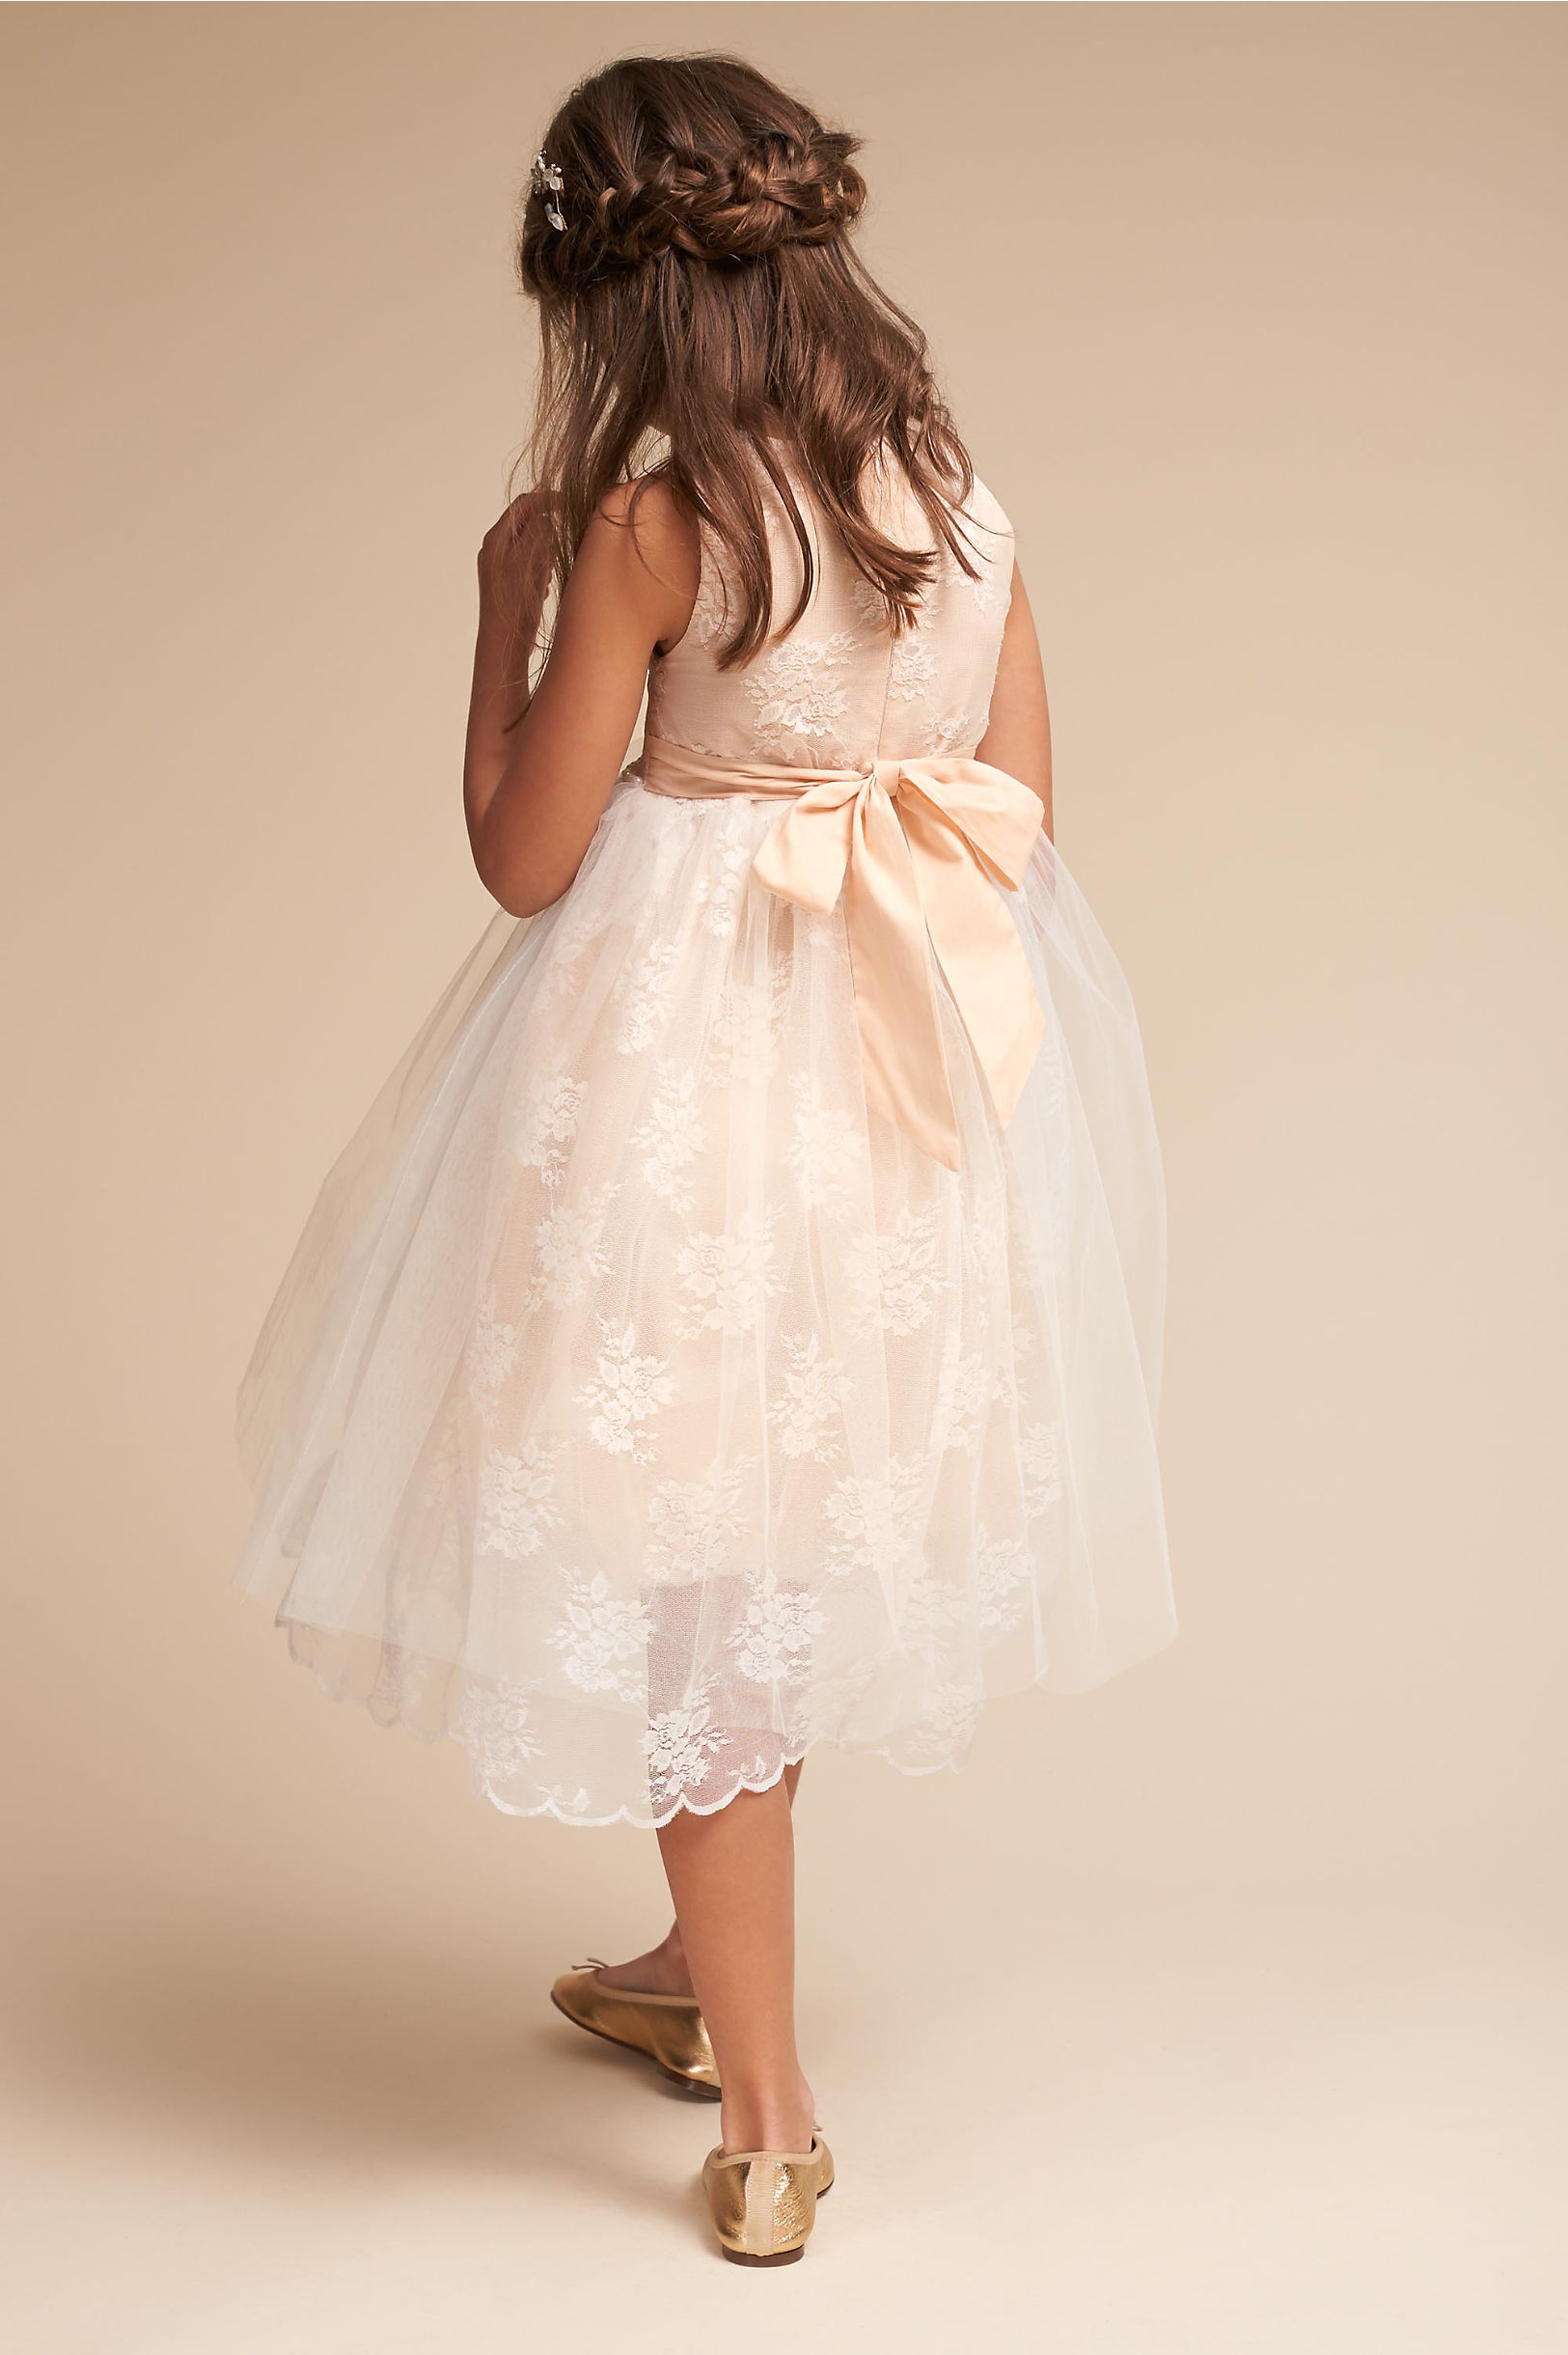 Alix Dress Ivory in Bridesmaids & Bridal Party | BHLDN